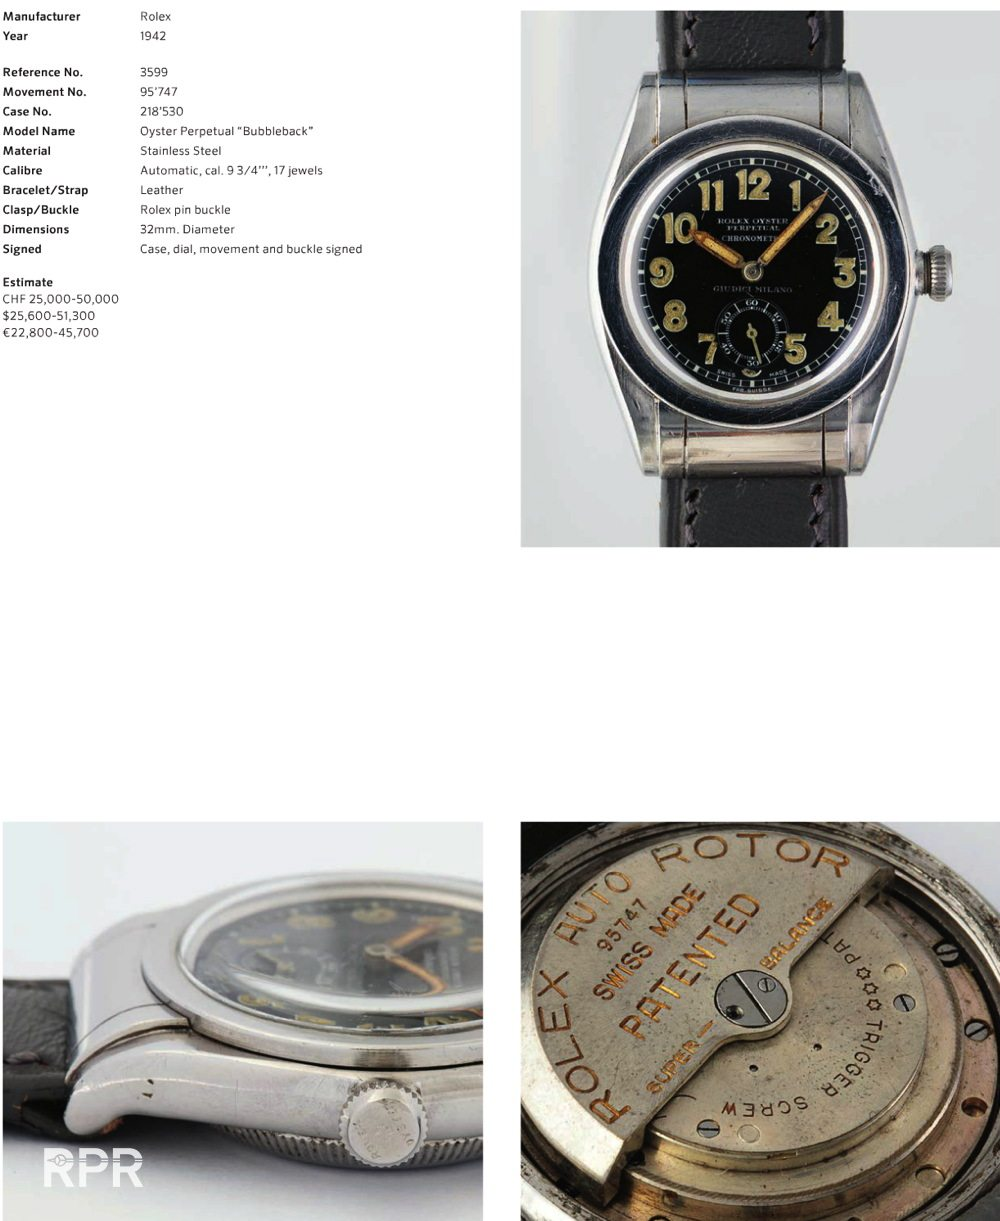 RPR_Rolex_geneva_auction_2015_9